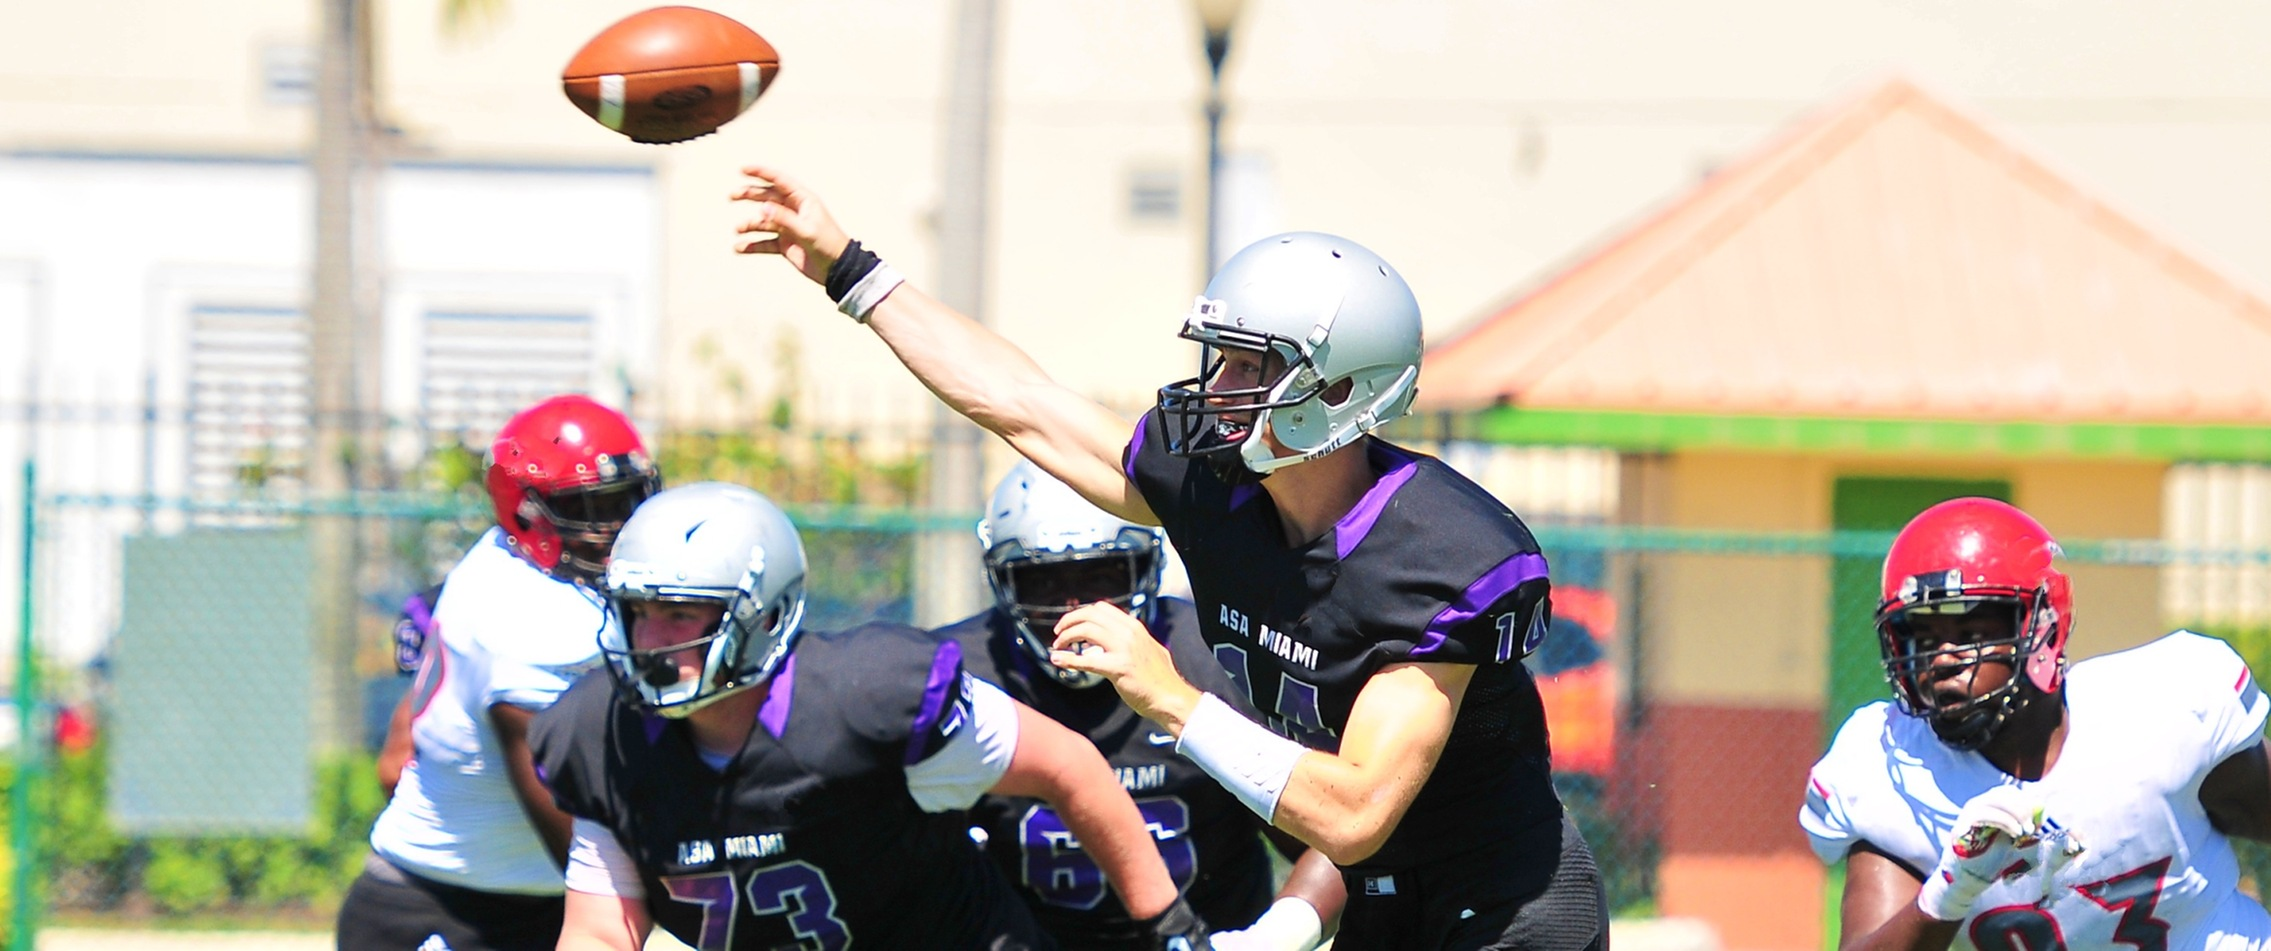 Winzeler Throws 3 TDs, ASA Miami Routs Nation Christian 63-3